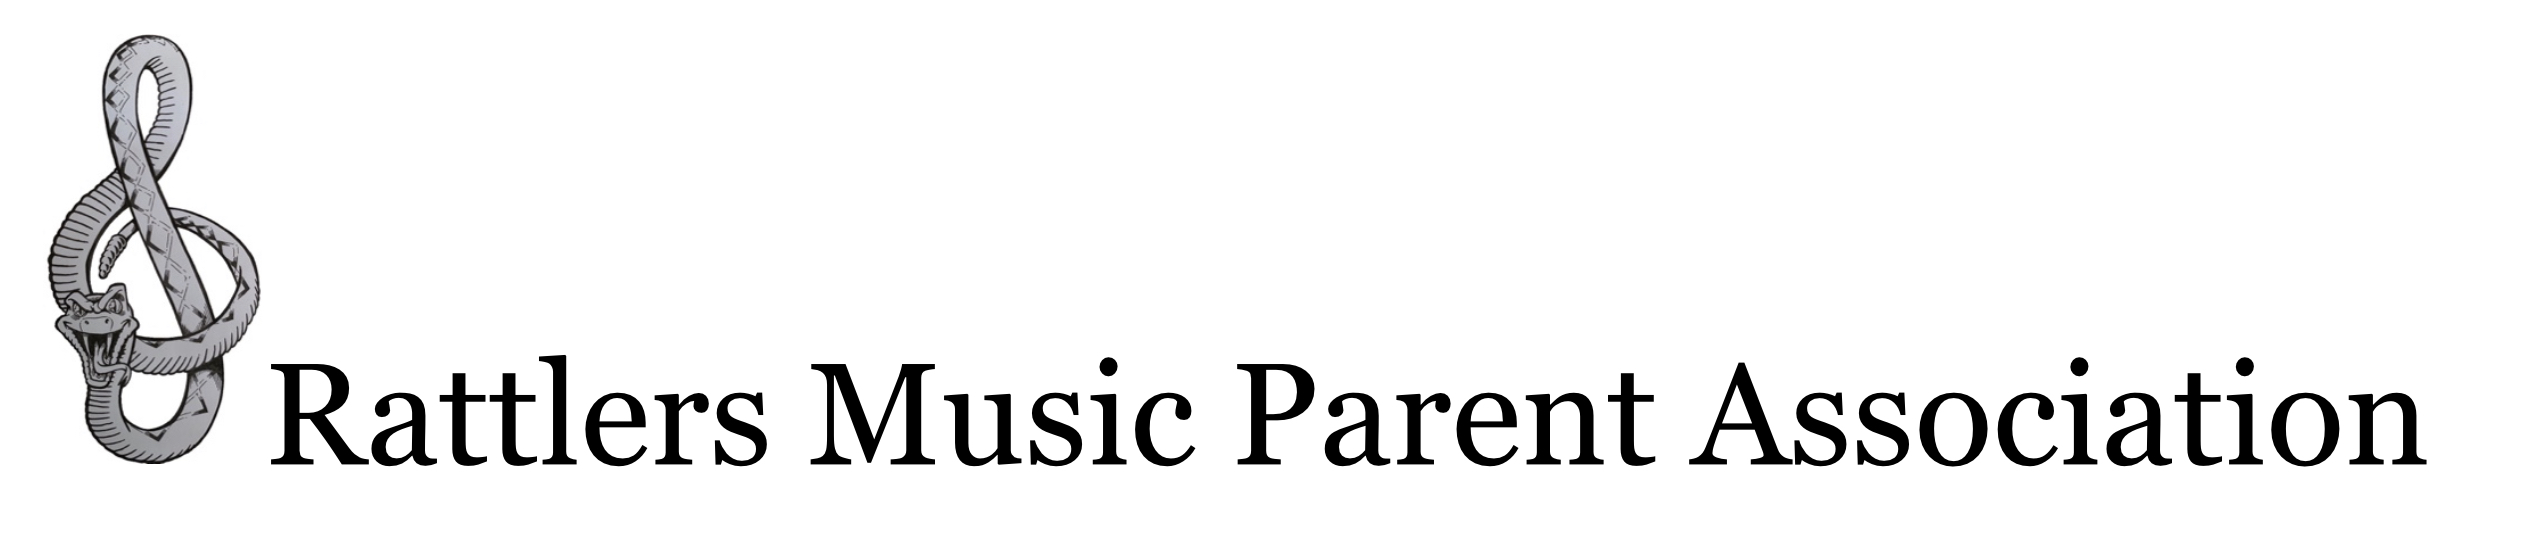 Rattlers Music Parent Association